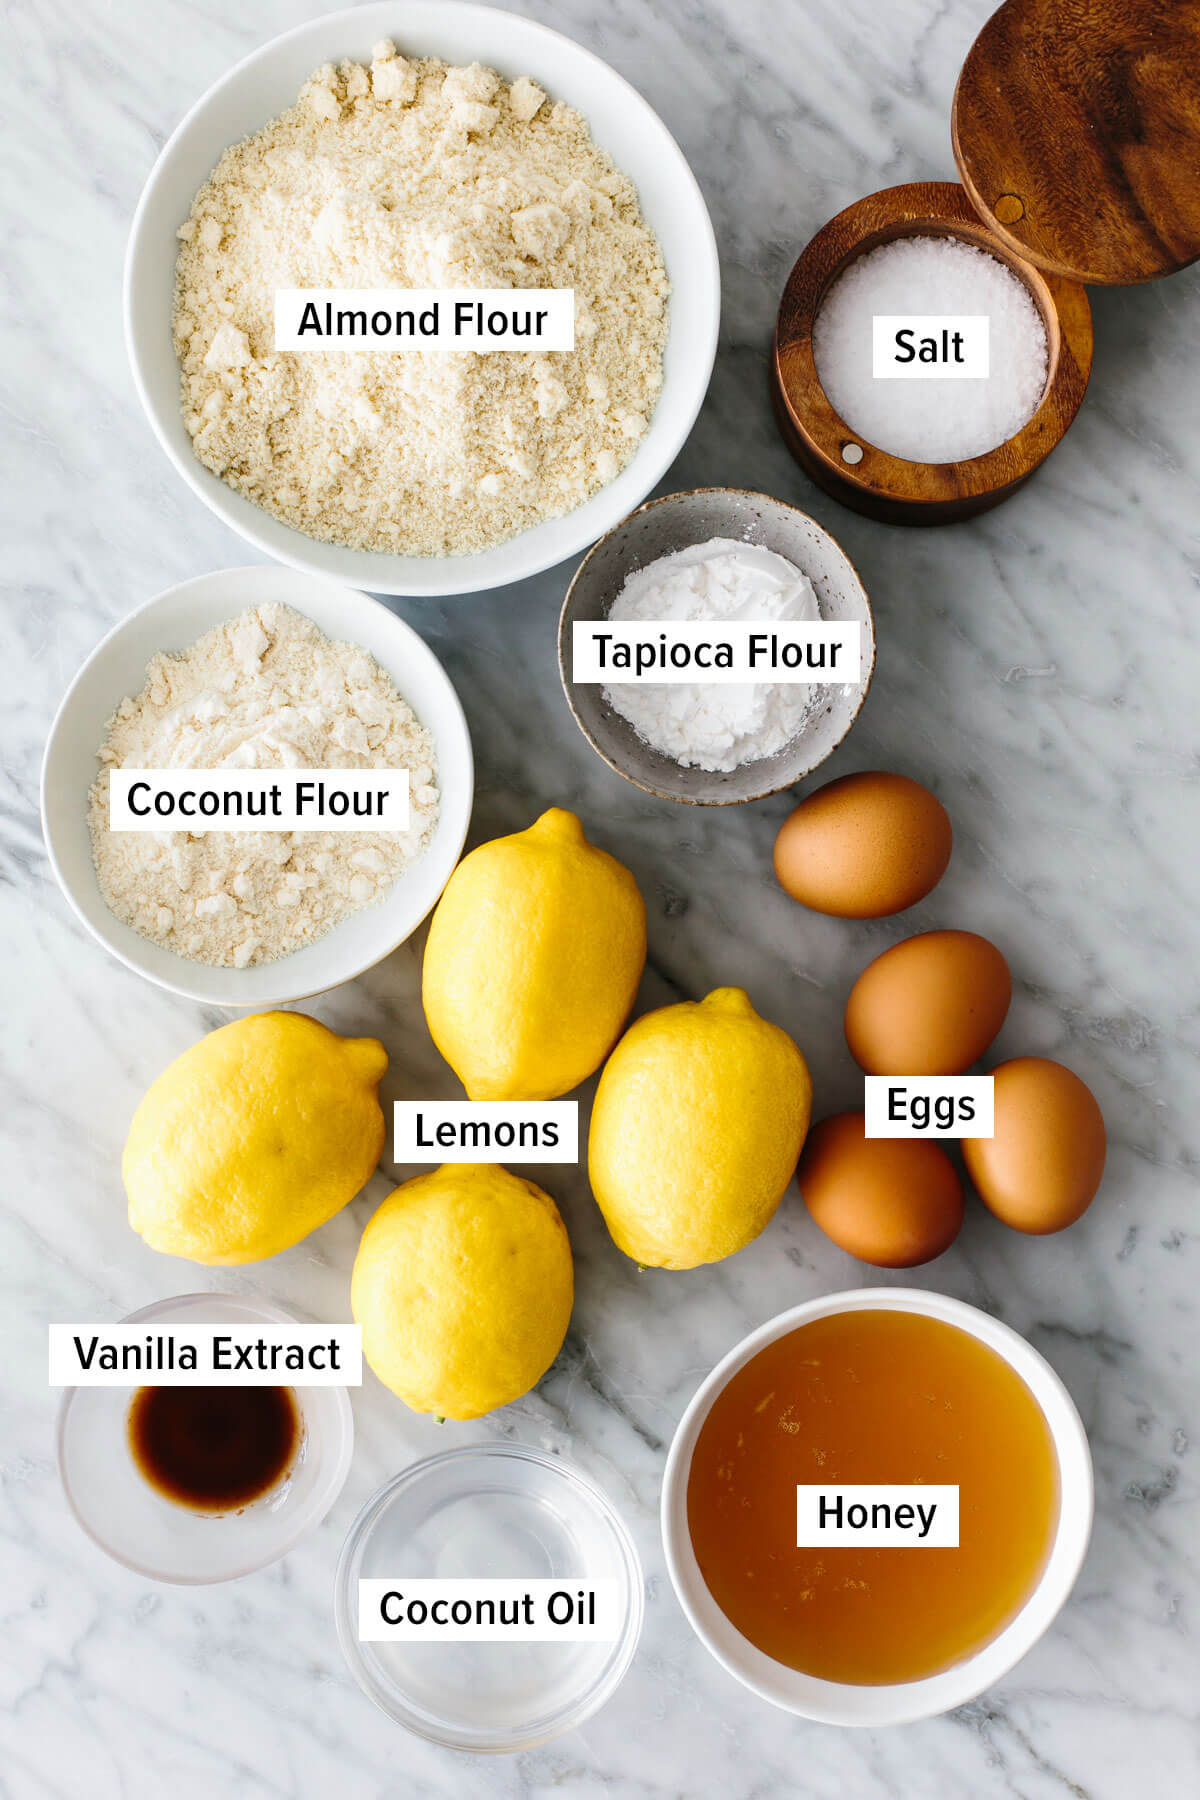 Ingredients for gluten-free lemon bars on a table.